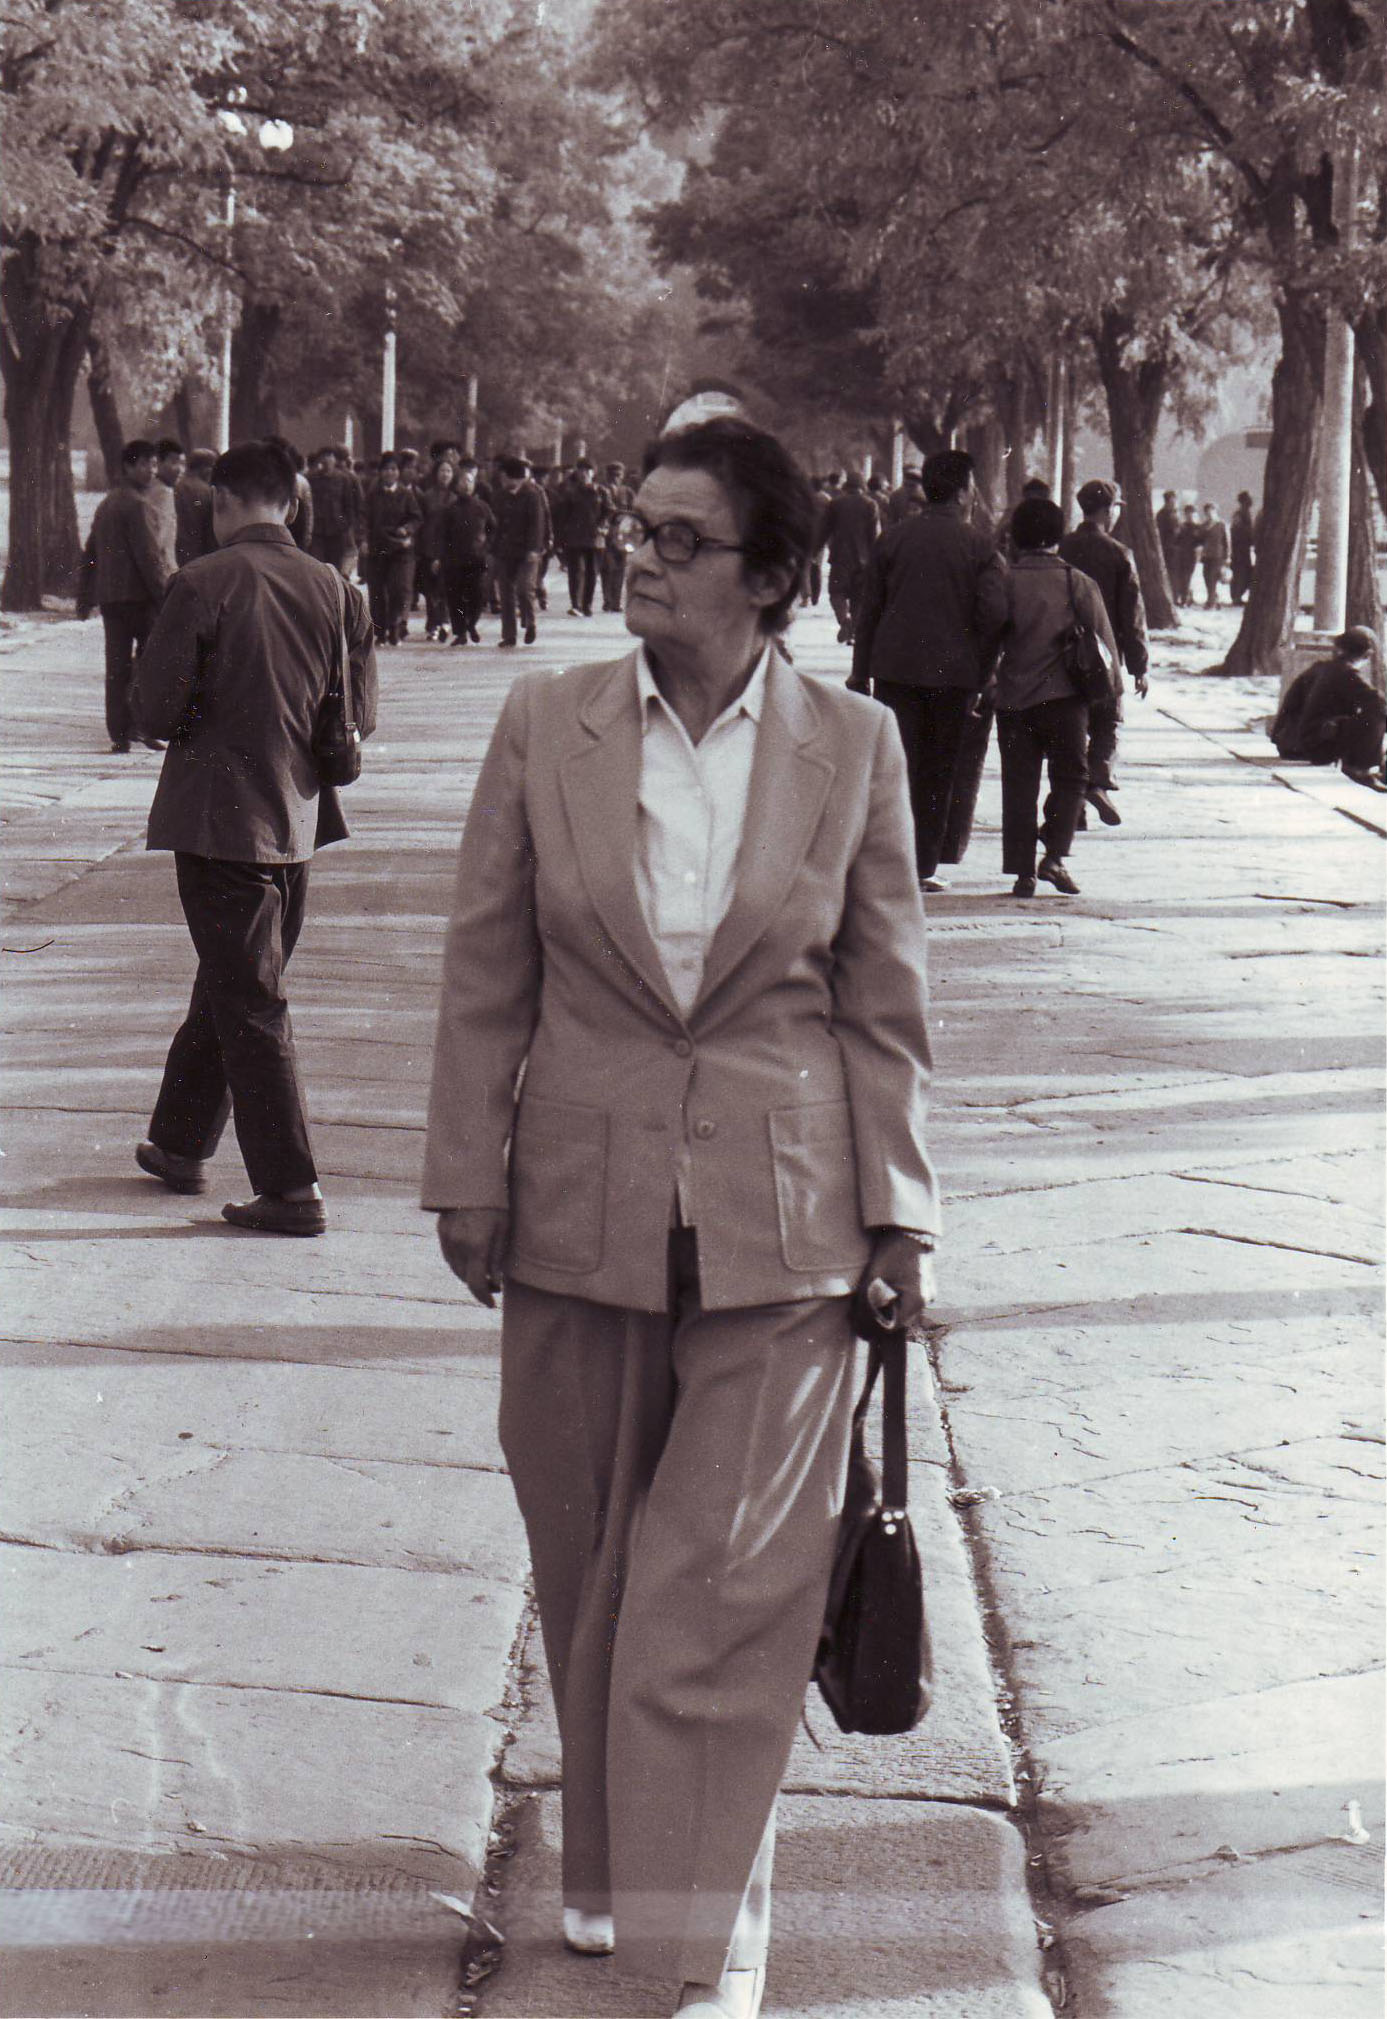 Clare Hollingworth strolls on a street in Beijing in the 1970s/80s.